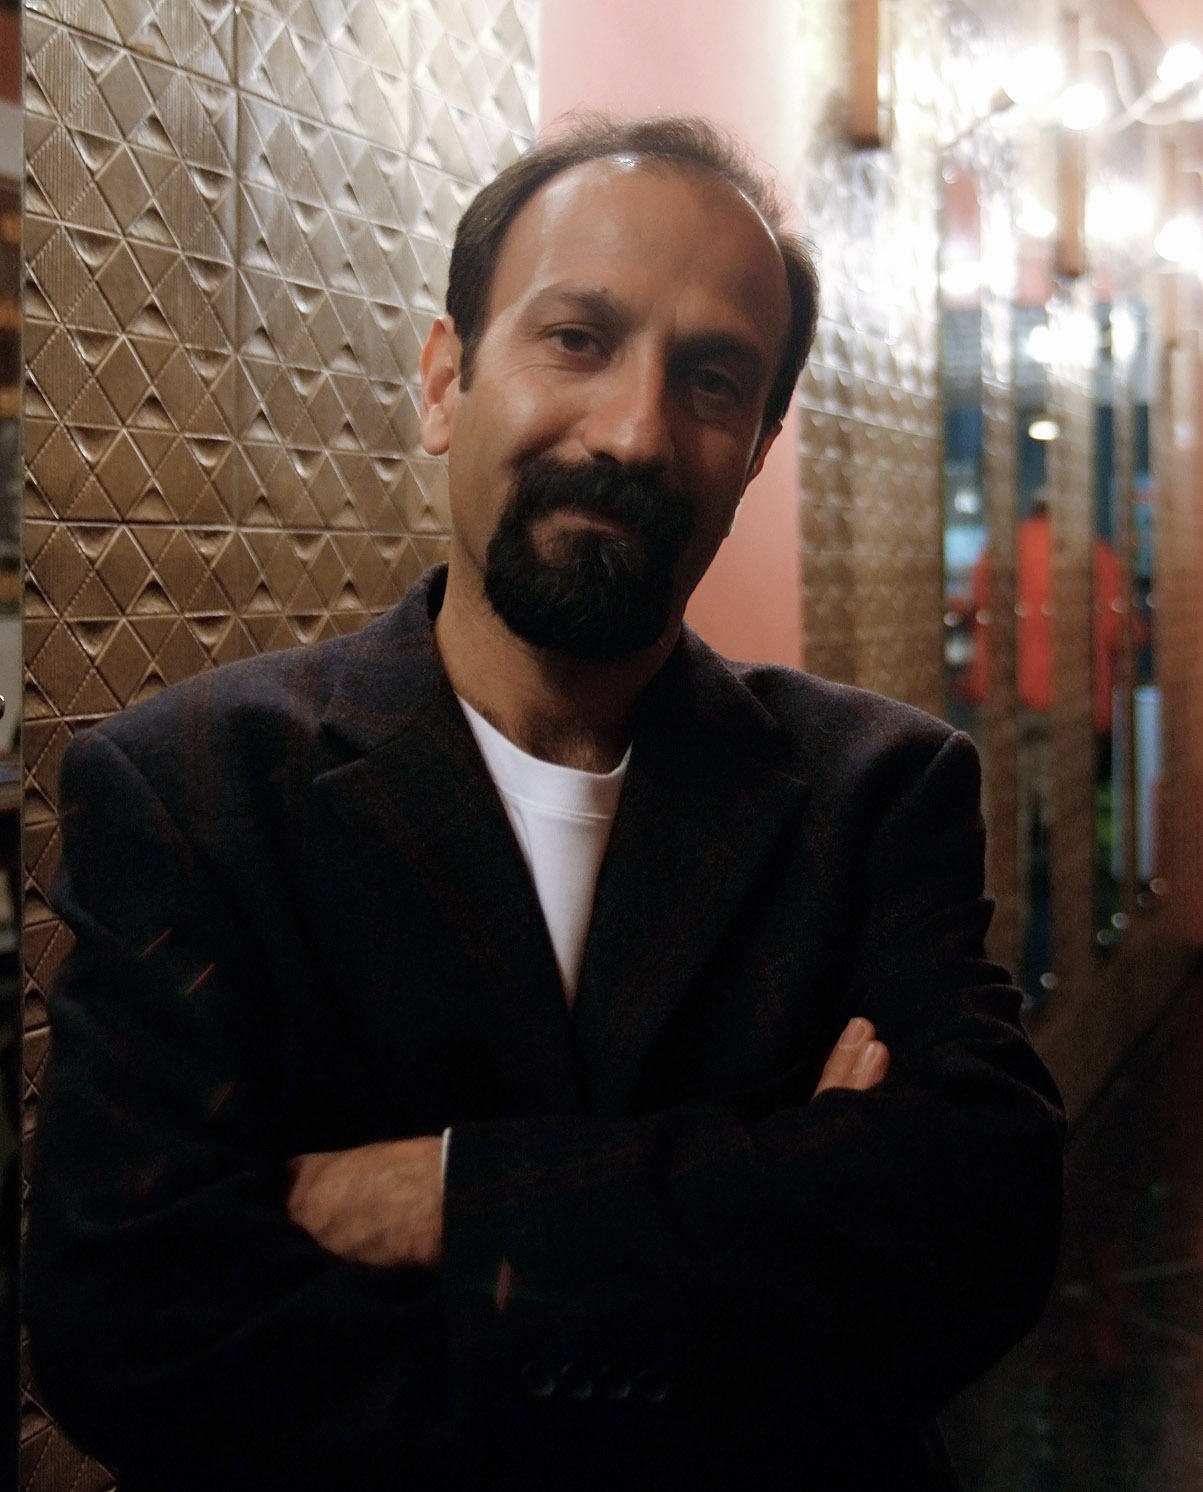 Asghar Farhadi at Statdkino Wien during Viennale 2009